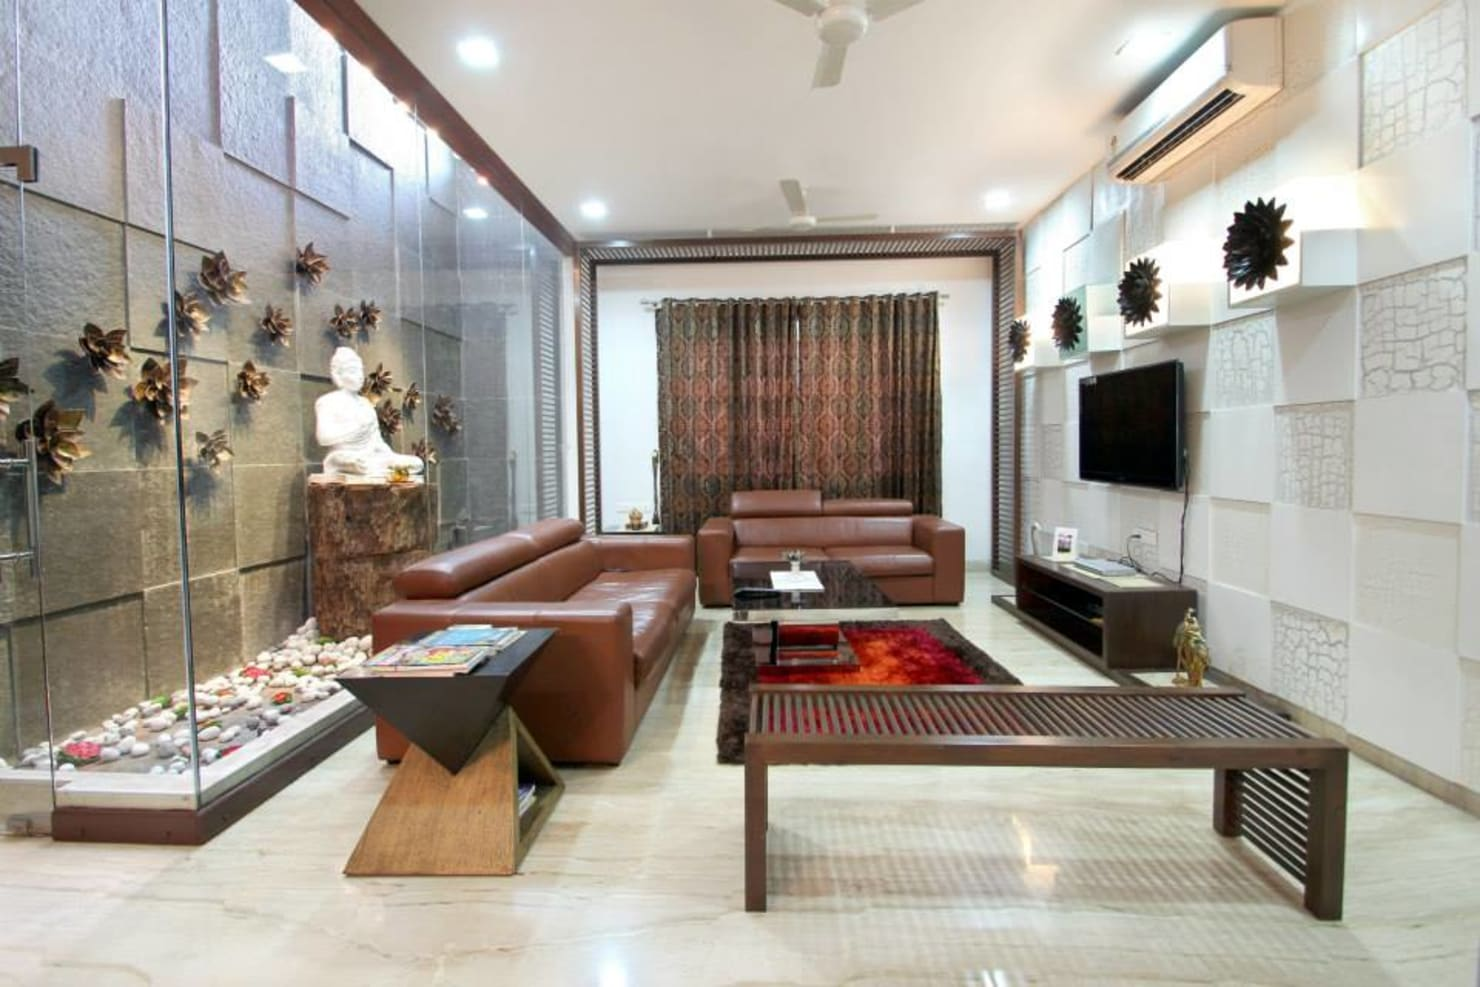 8 Feng Shui tips for placing Buddha statues in your home